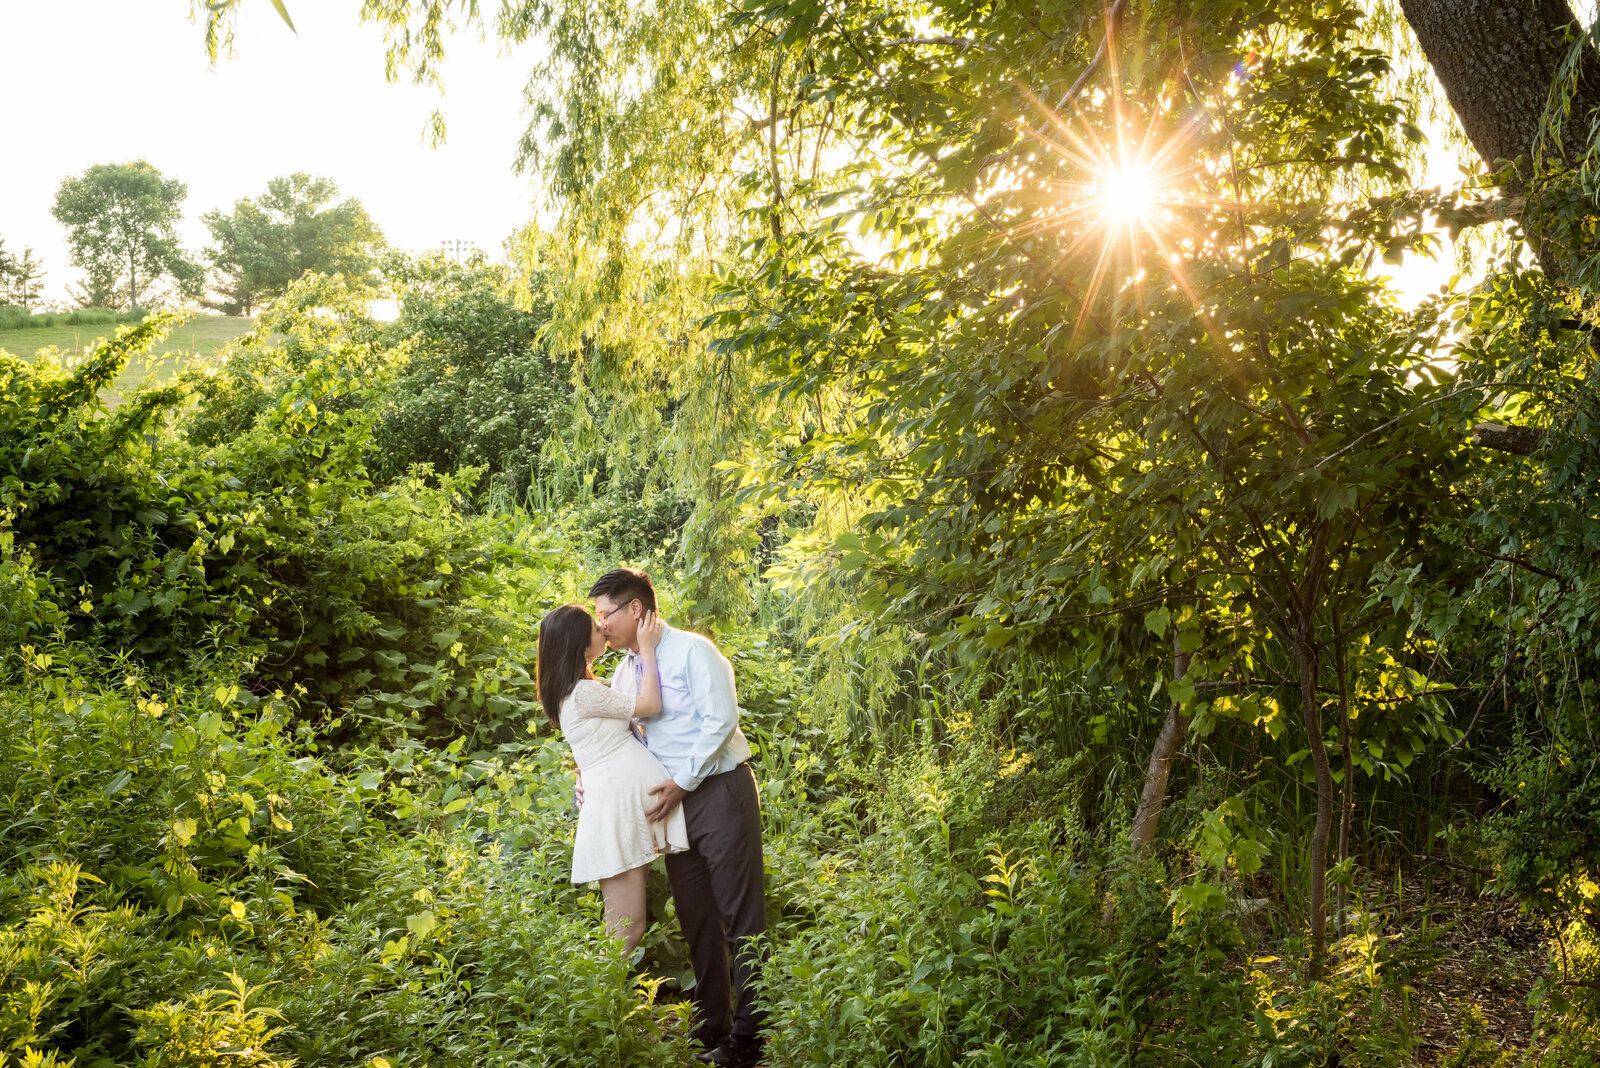 park in Cambridge, MA maternity session at sunset